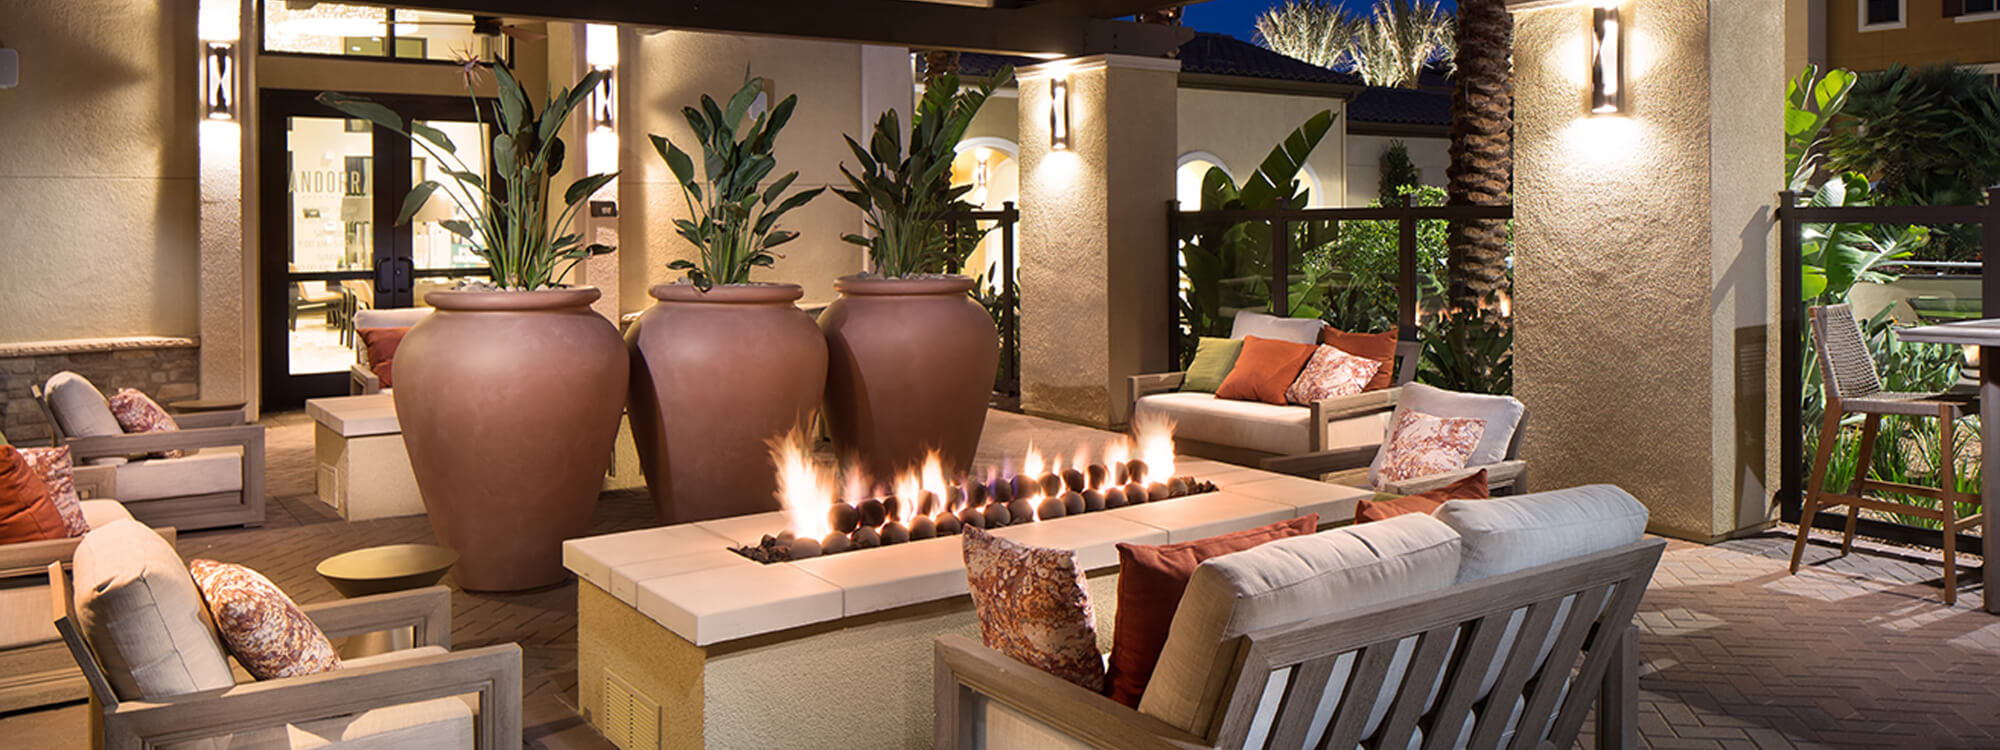 Loggia with Soft Seating and Fire Features